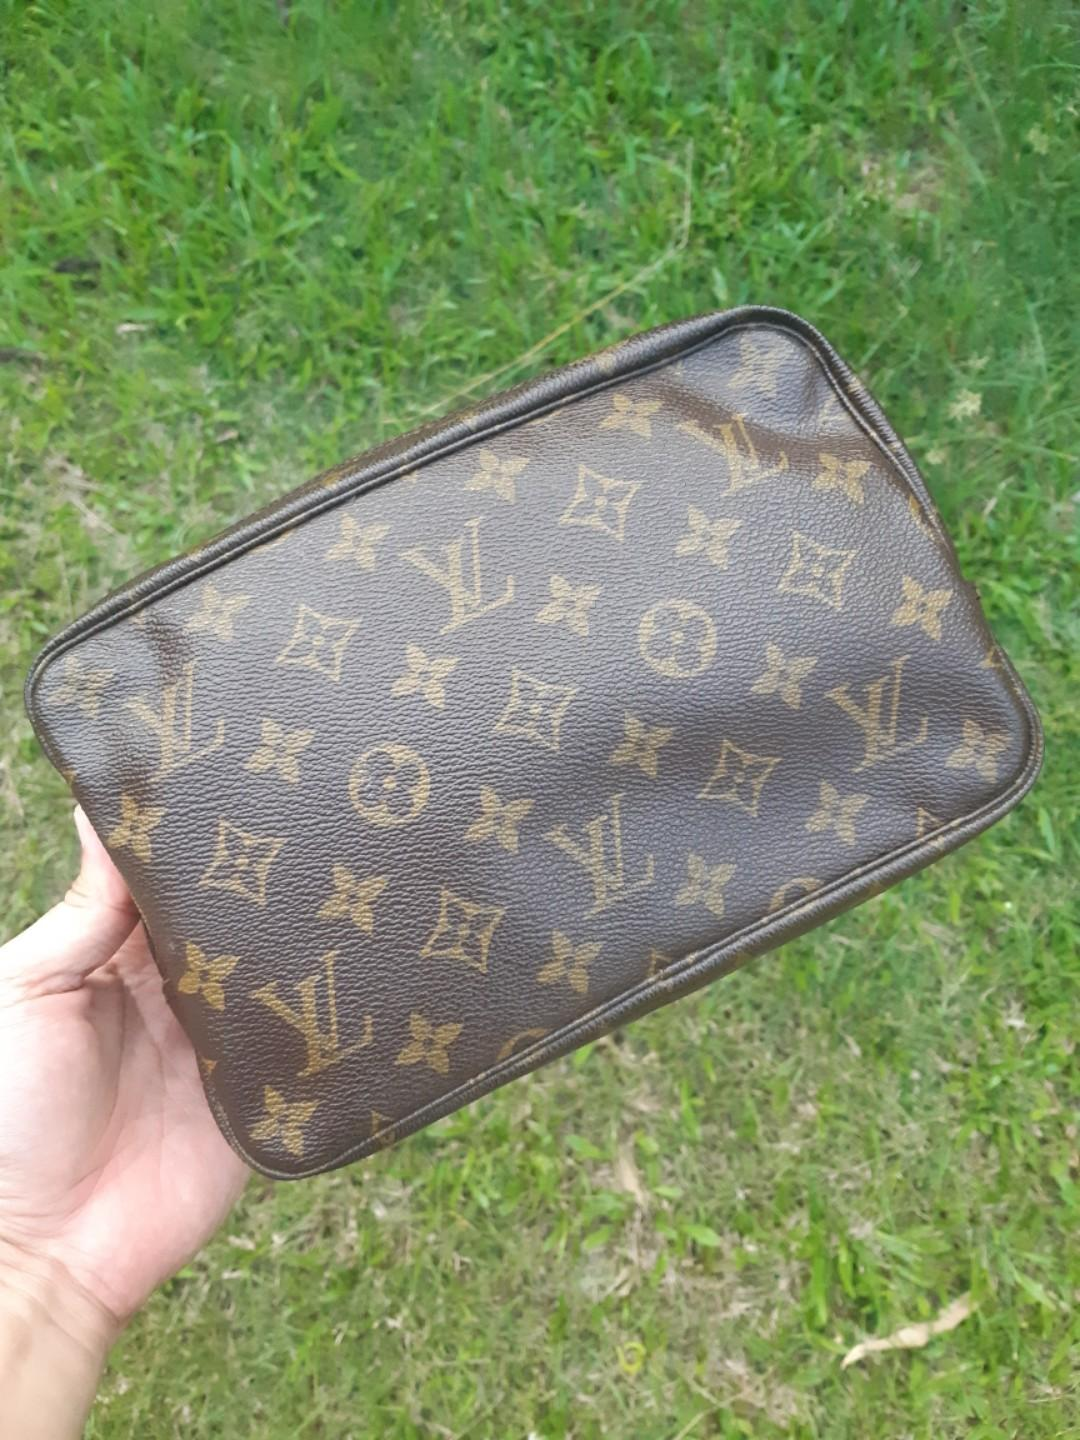 Louis Vuitton Clutch Bag vintage Louis Vuitton monogram TROUSSE 23 cosmetic bag